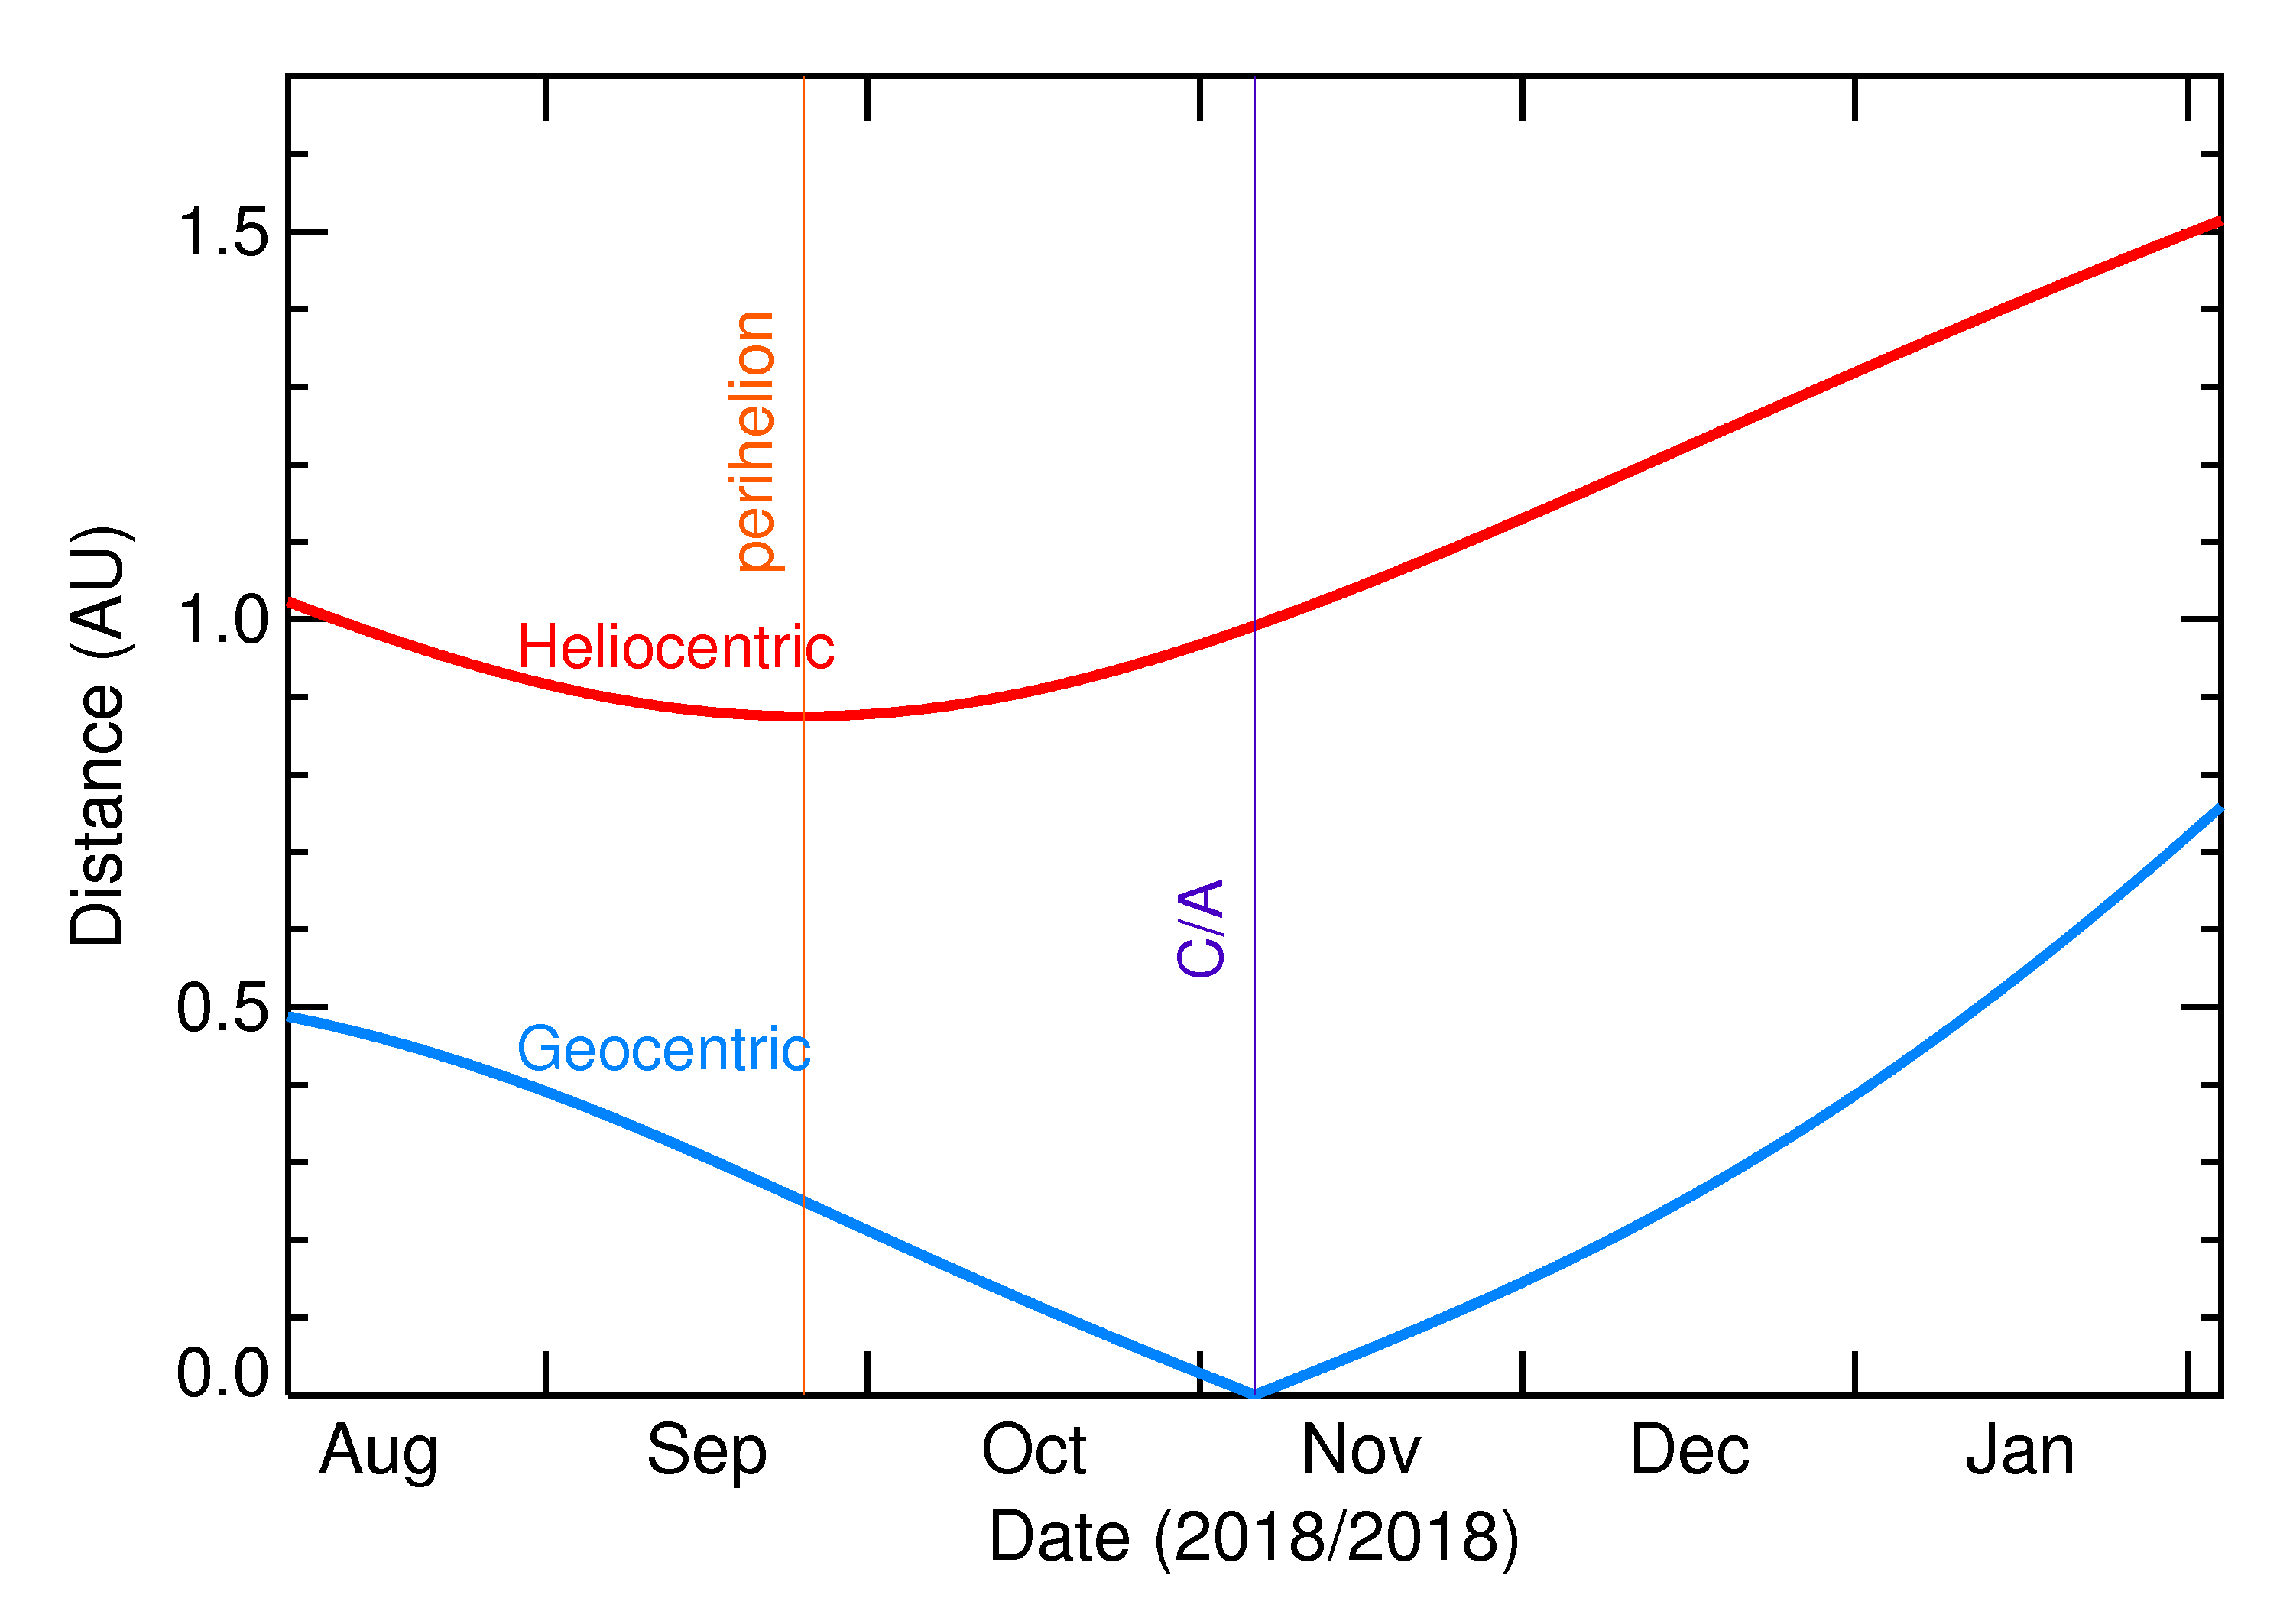 Heliocentric and Geocentric Distances of 2018 VT5 in the months around closest approach